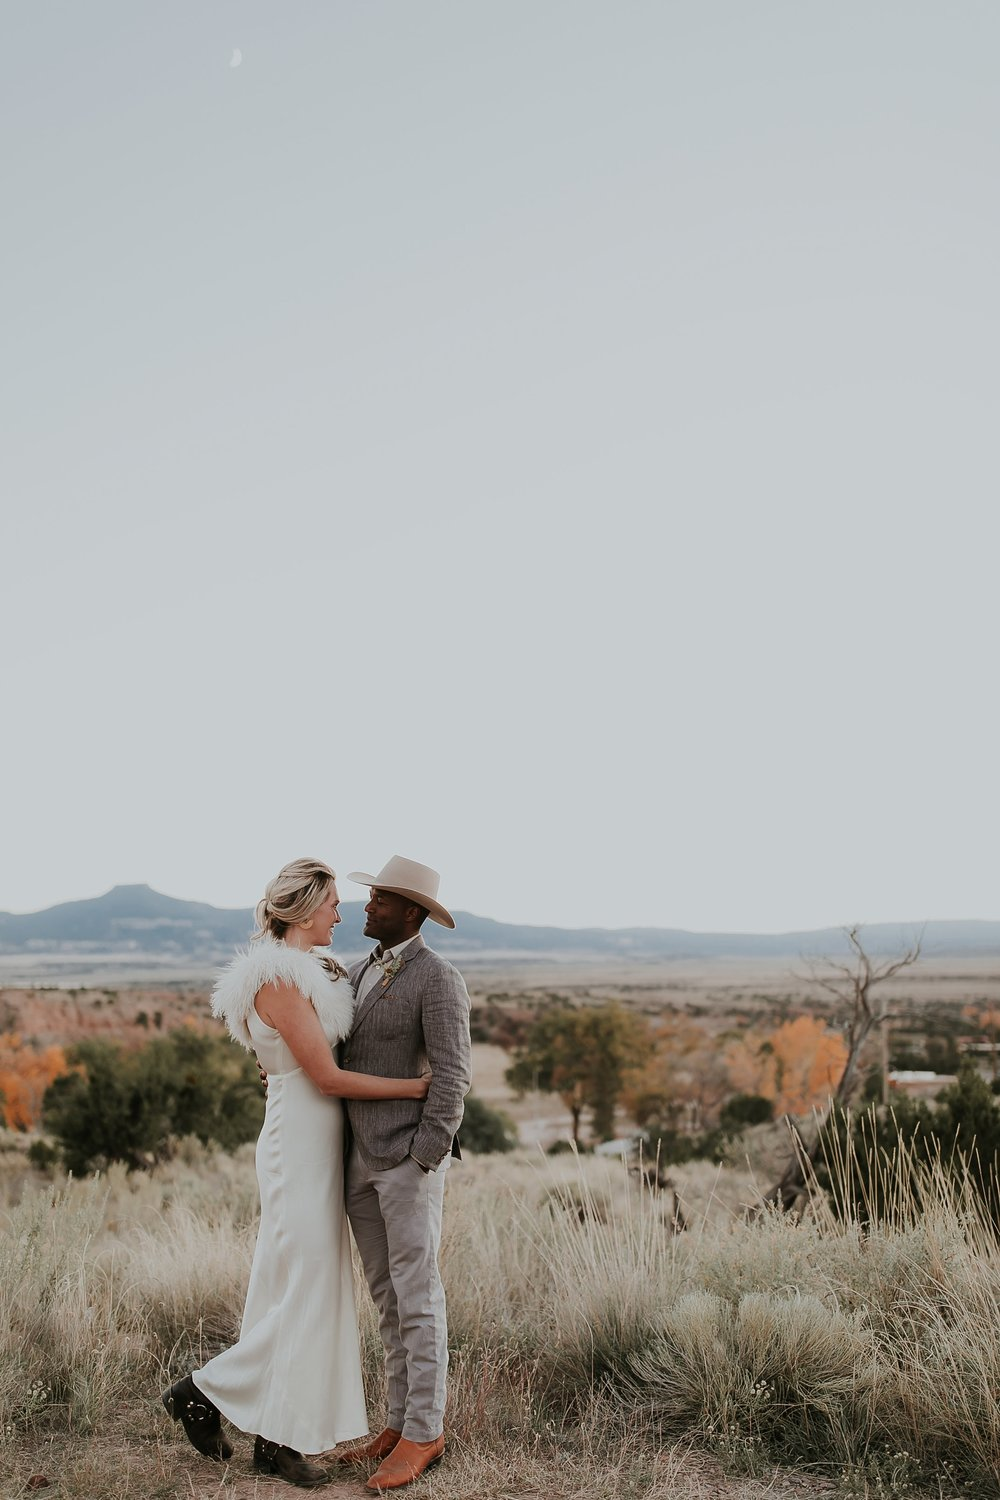 Alicia+lucia+photography+-+albuquerque+wedding+photographer+-+santa+fe+wedding+photography+-+new+mexico+wedding+photographer+-+new+mexico+ghost+ranch+wedding+-+styled+wedding+shoot_0083.jpg